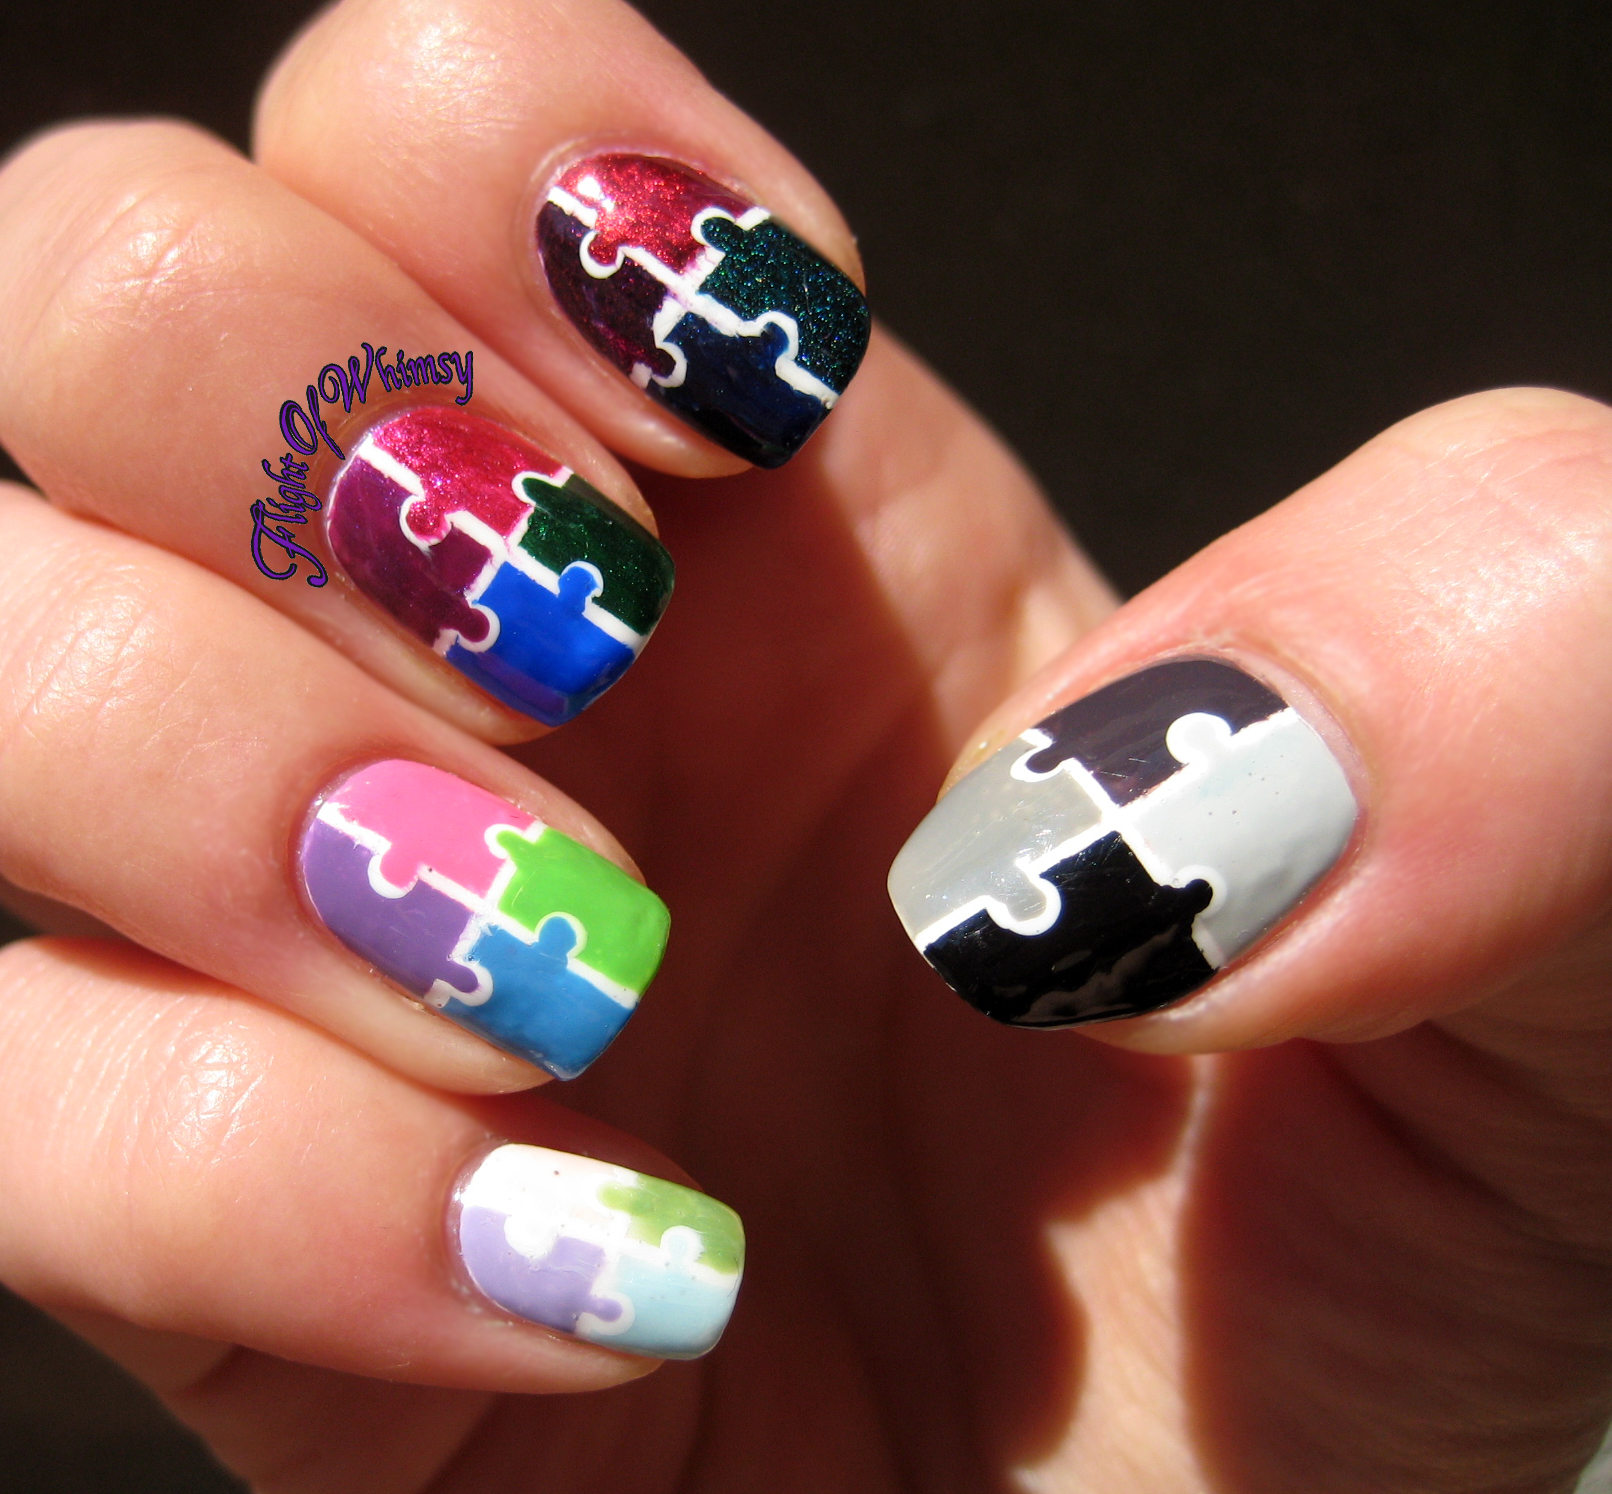 16 Amazing Puzzle Nails Art Designs 2015 16 Amazing Puzzle Nails Art Designs 2015 puzzle nail art designs 13